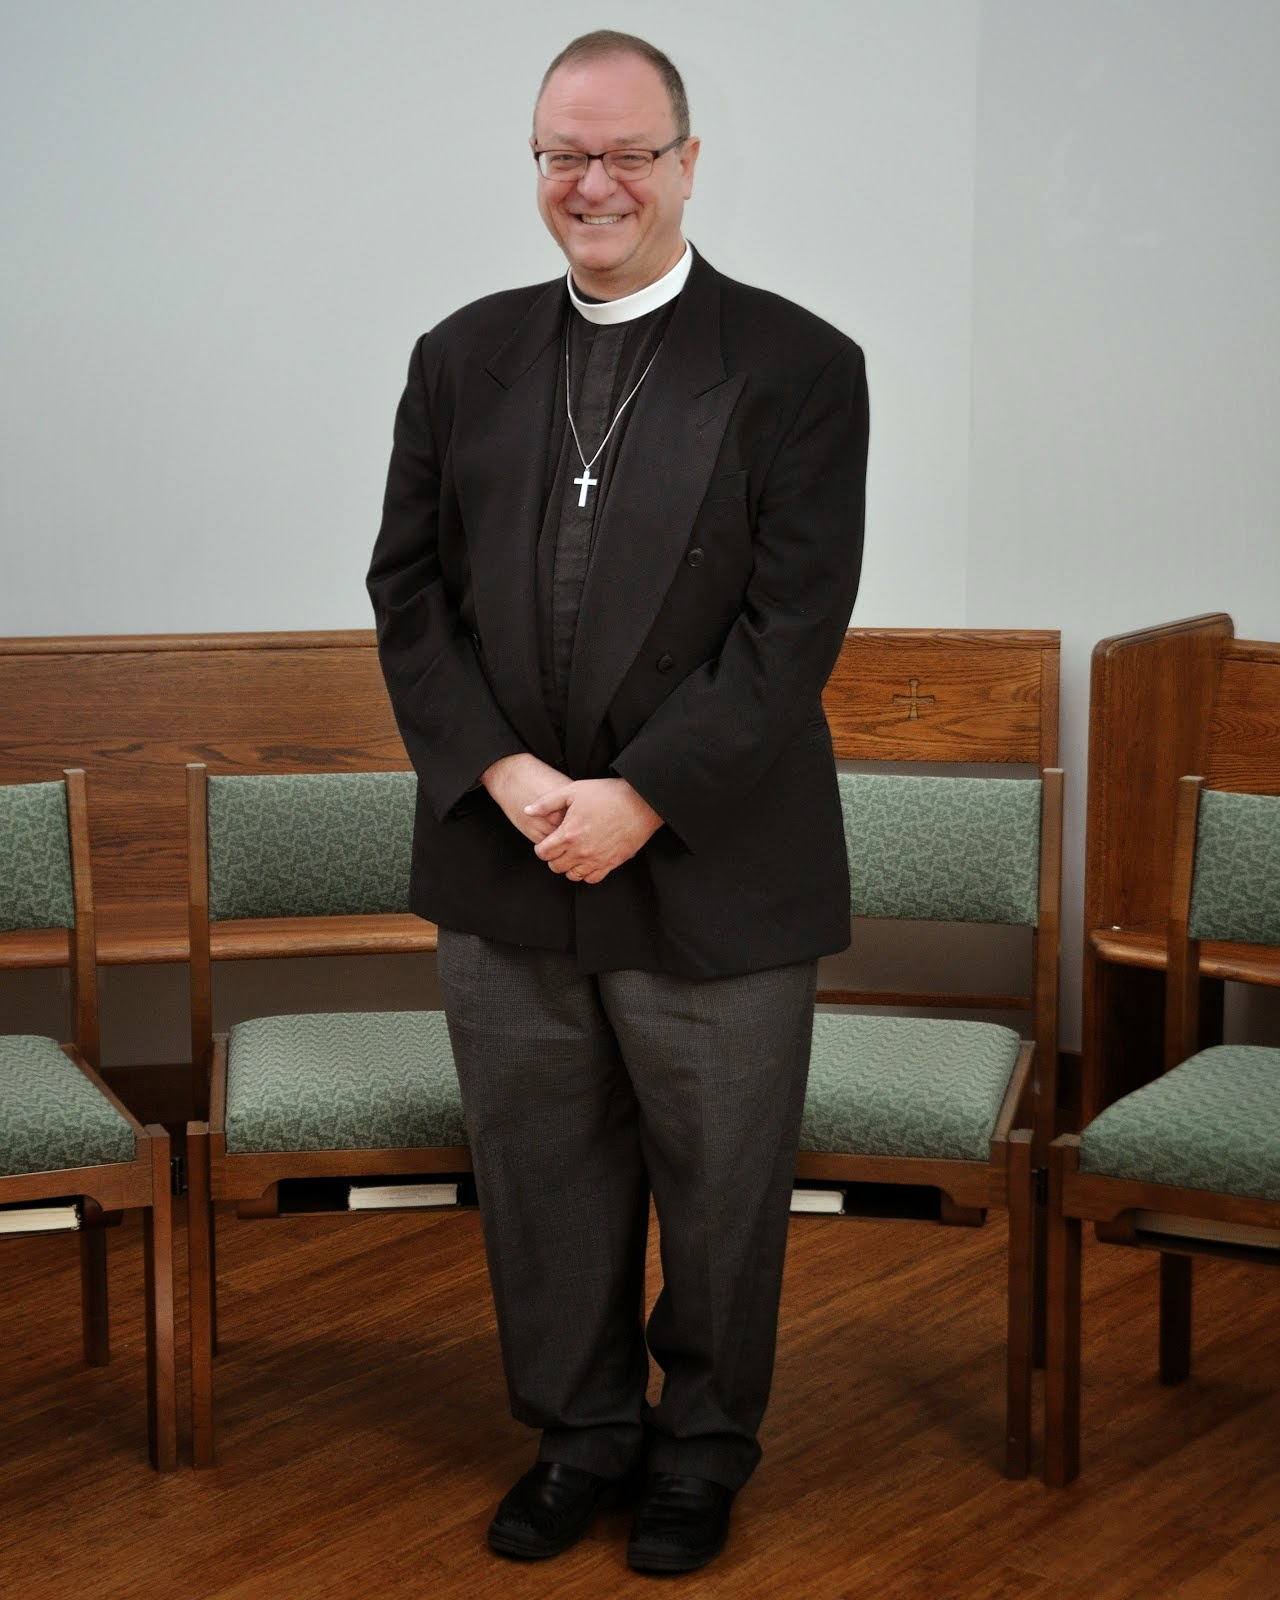 The Reverend Canon Mark Kinghan